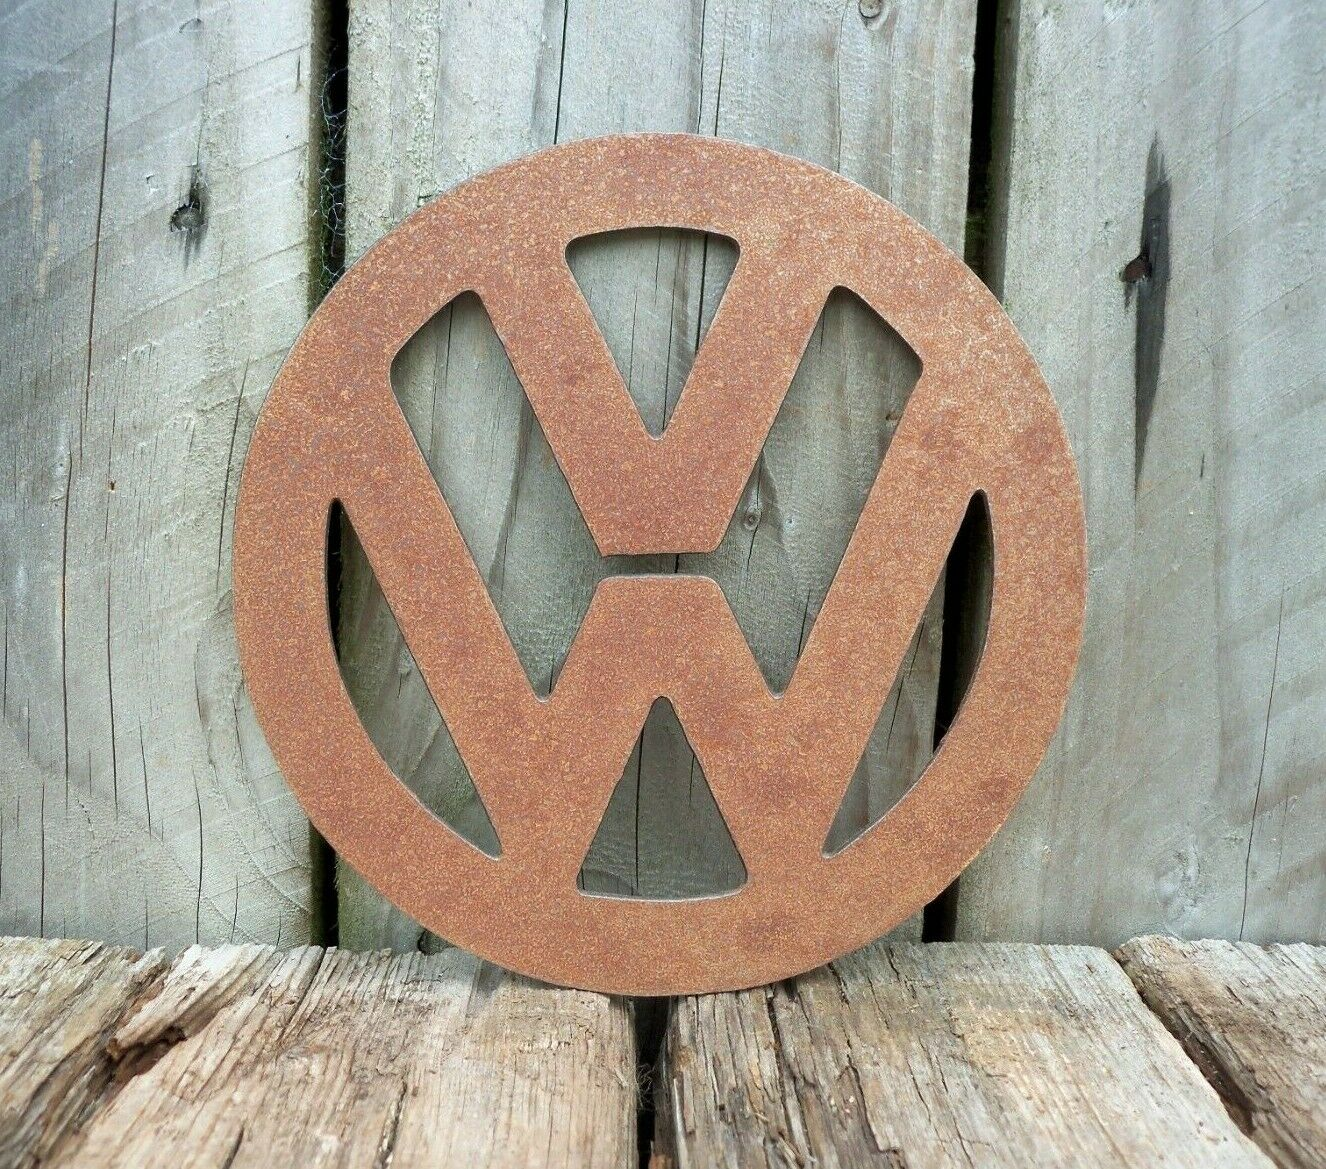 A Rusty Metal VW BADGE SIGN Garden Ornament Rustic Vintage Gift Birthday Present